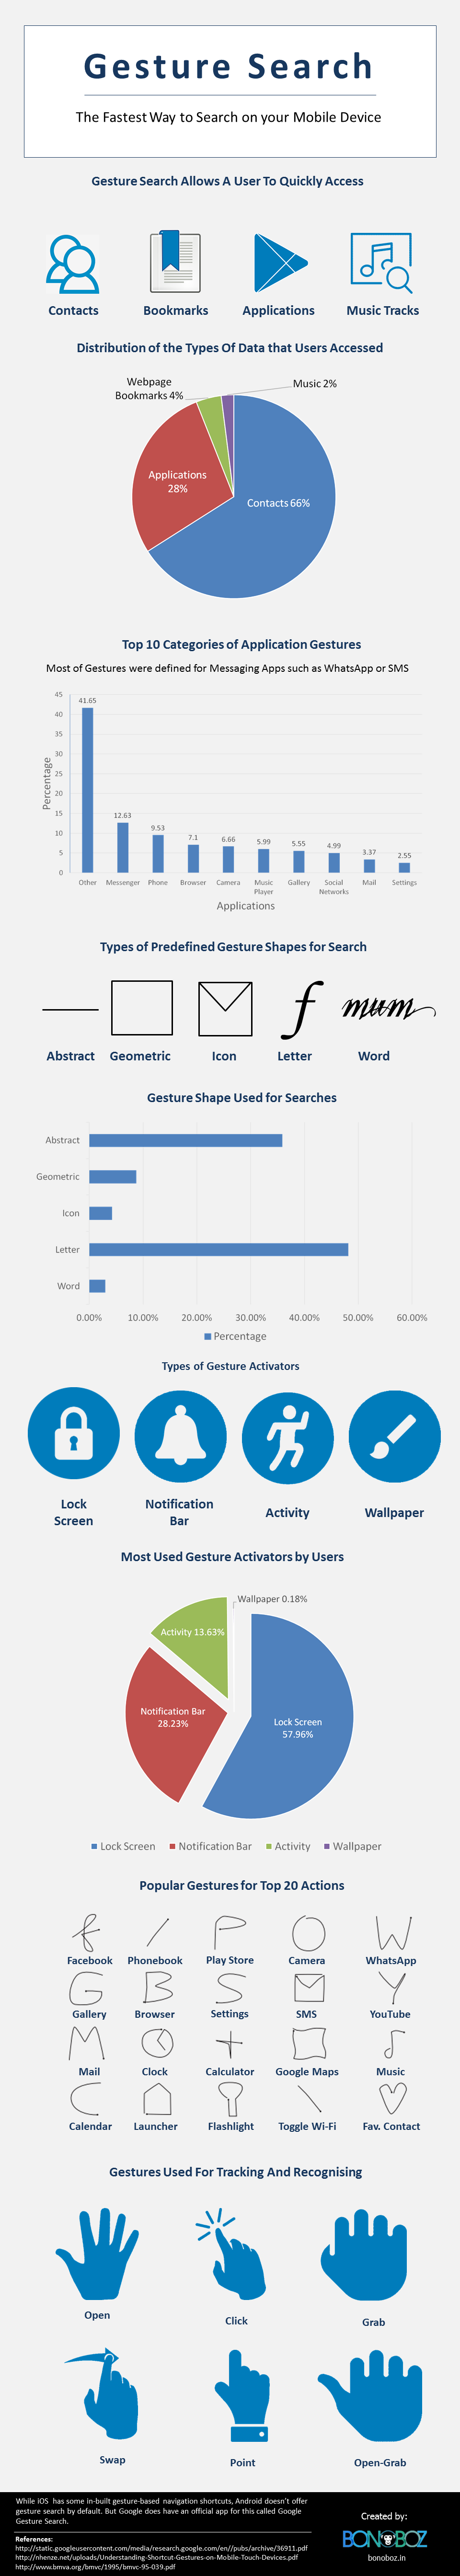 infographic, gesture search, mobile computing, search, shortcut, mobile search